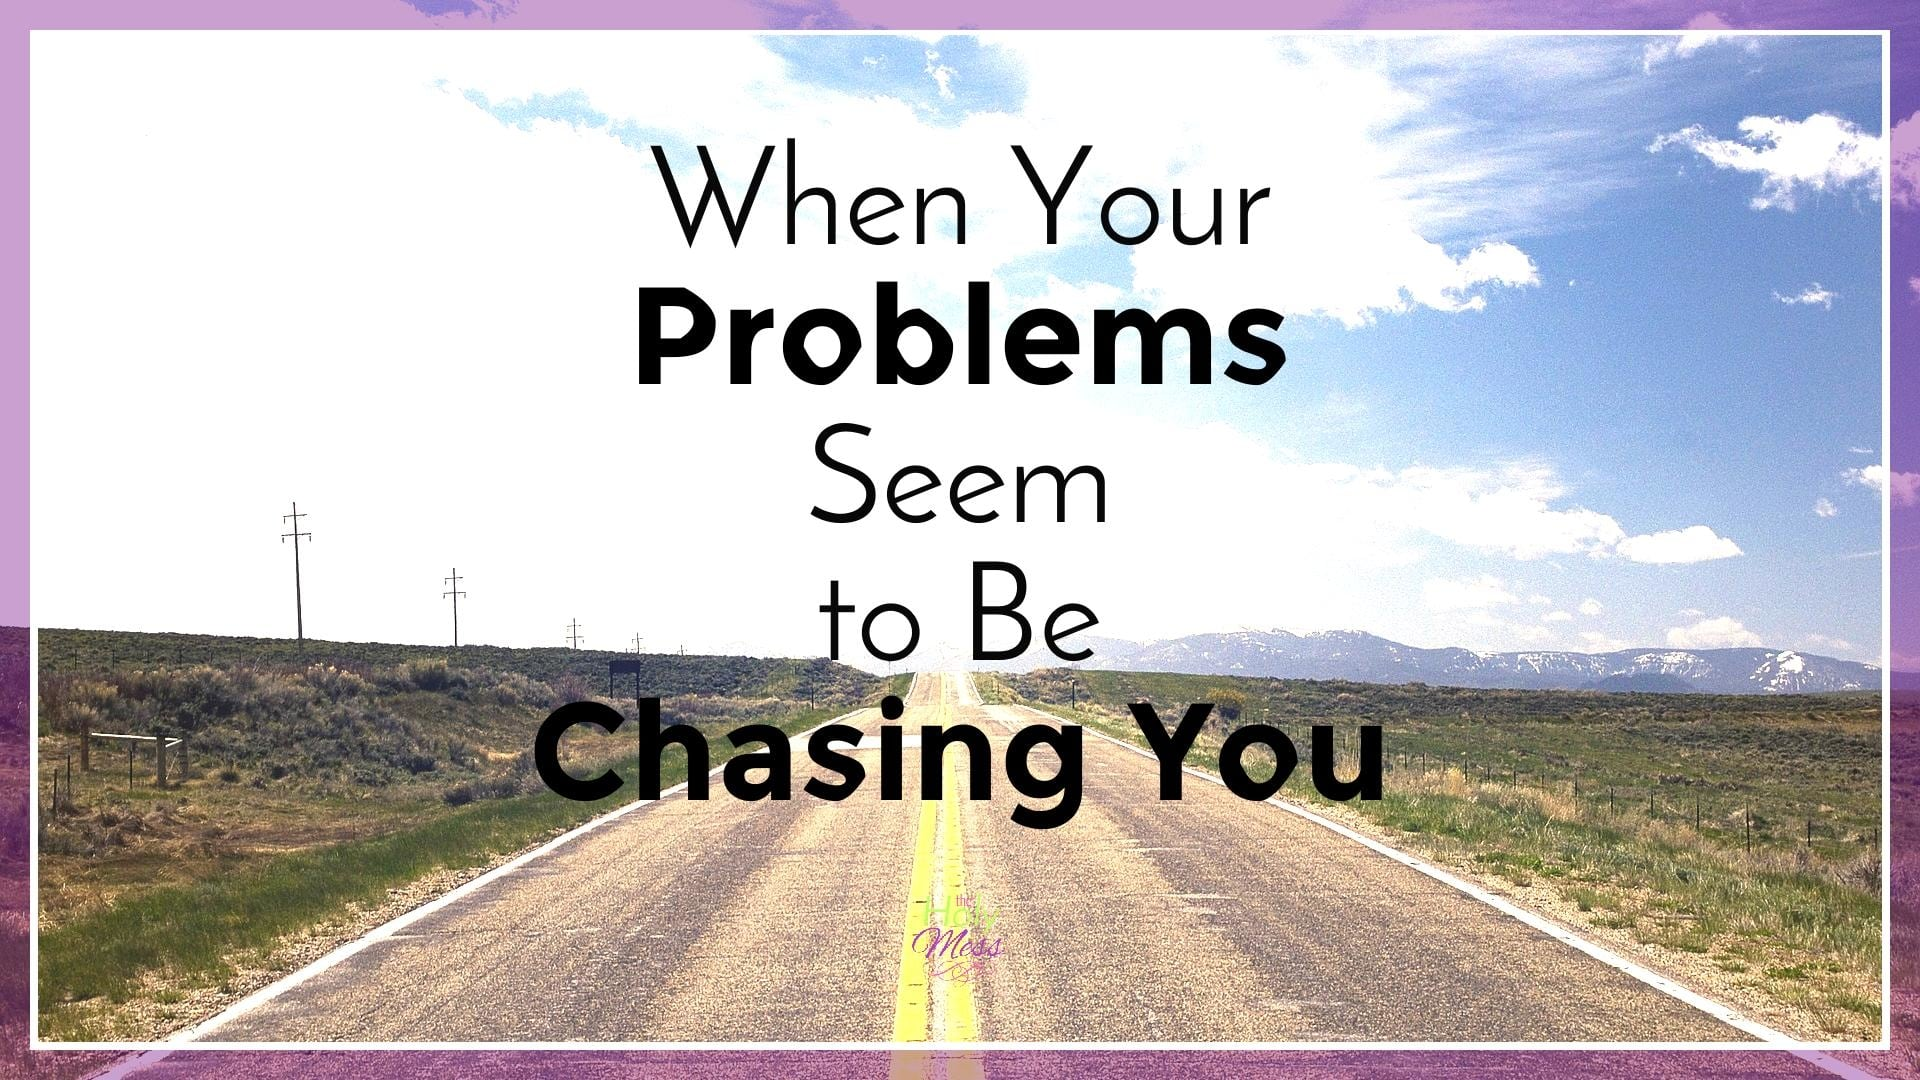 When Your Problems Seem to Be Chasing You